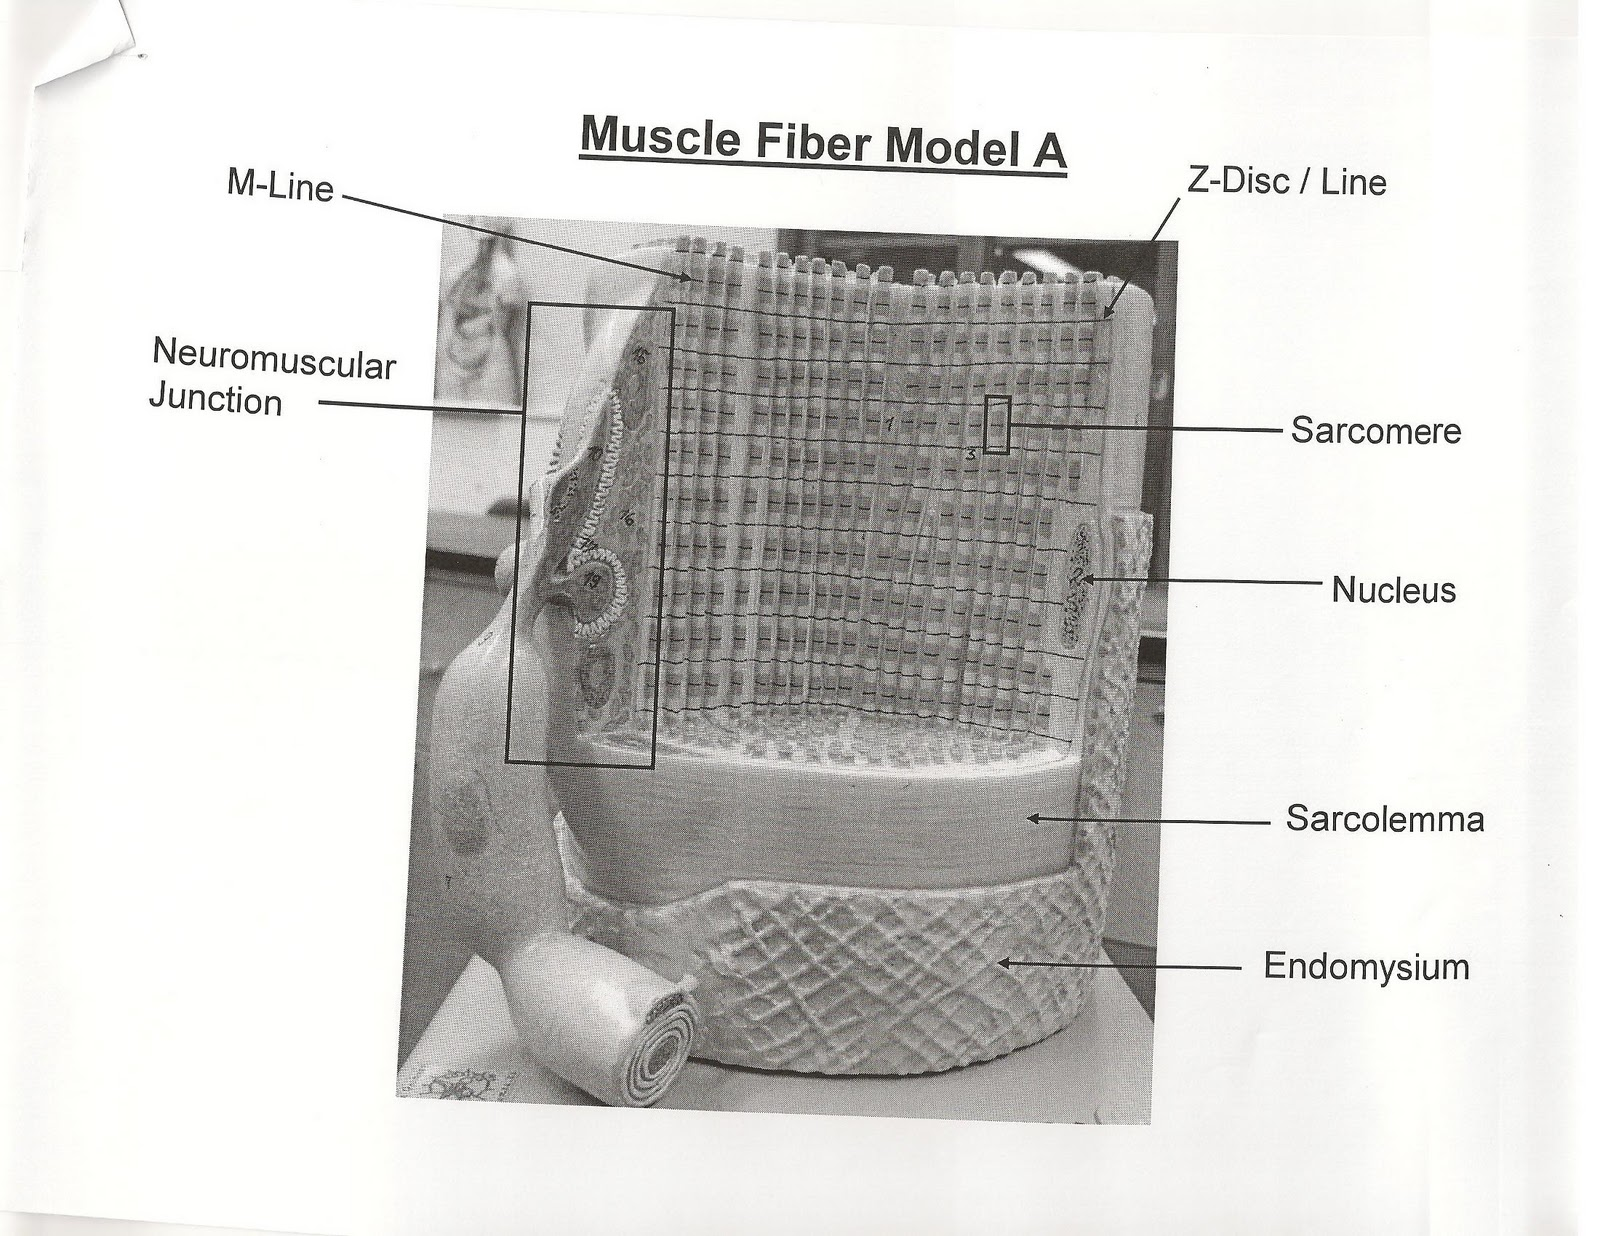 ANATOMY & PHYSIOLOGY I BIS 240: Muscle Fiber Model A